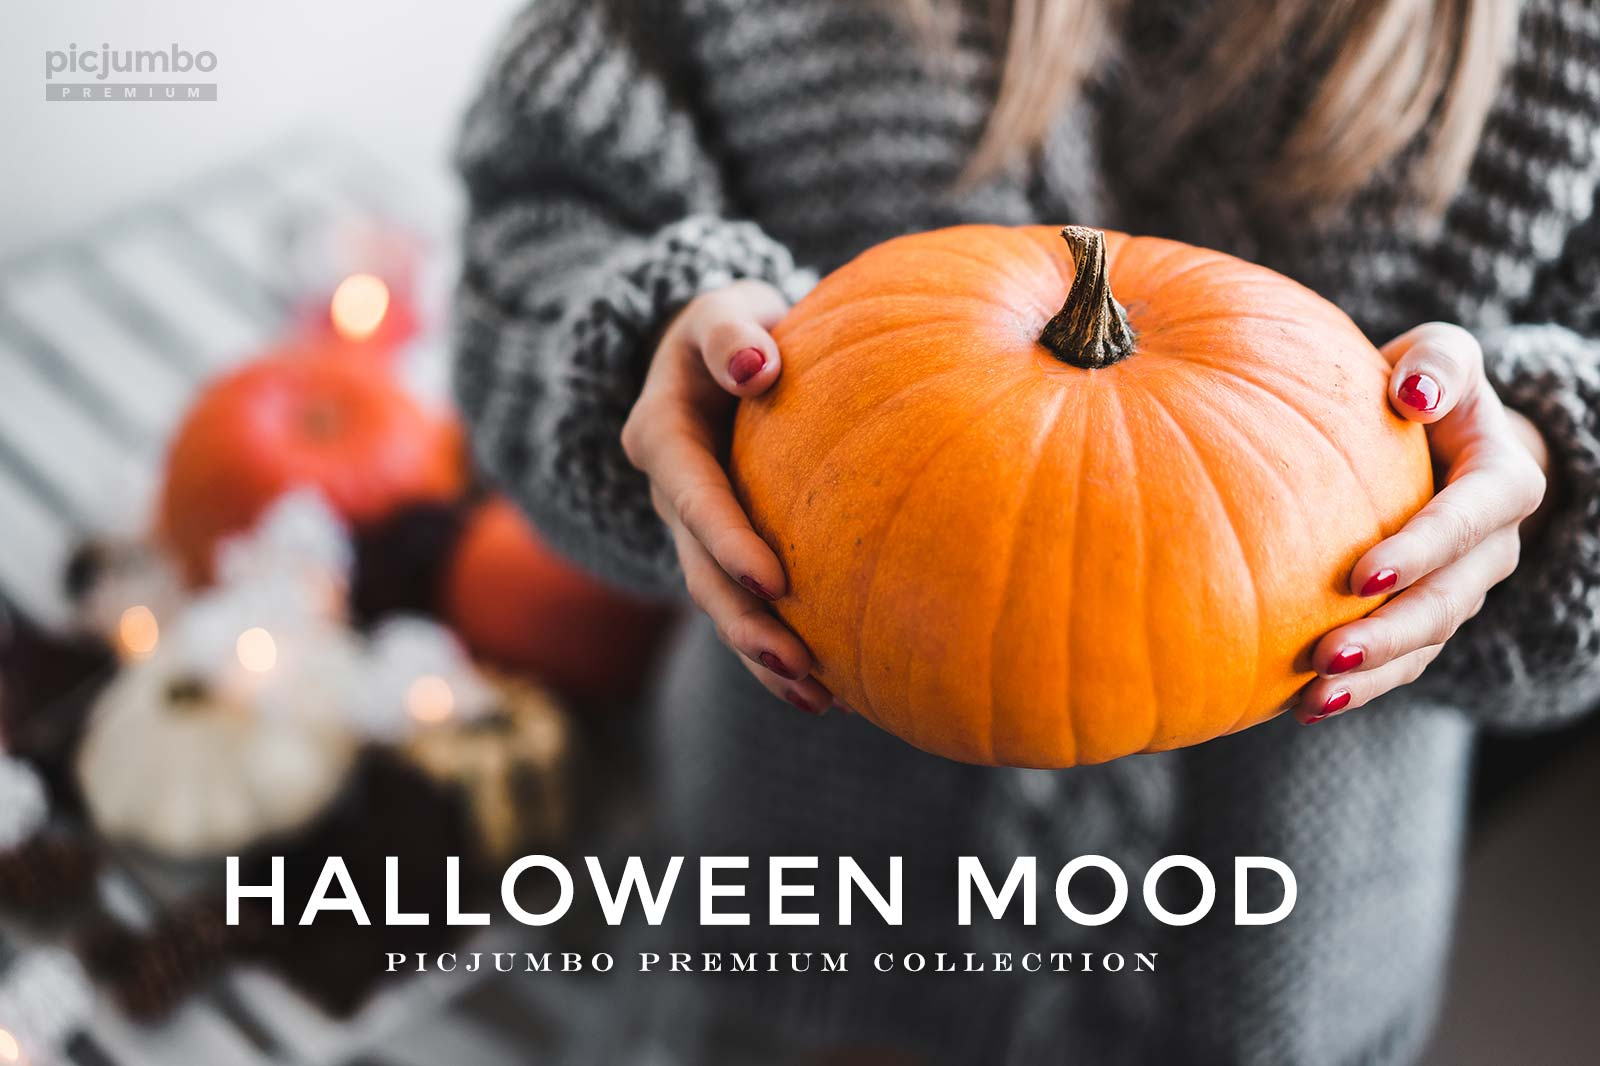 Halloween Mood — Join PREMIUM and get instant access to this collection!